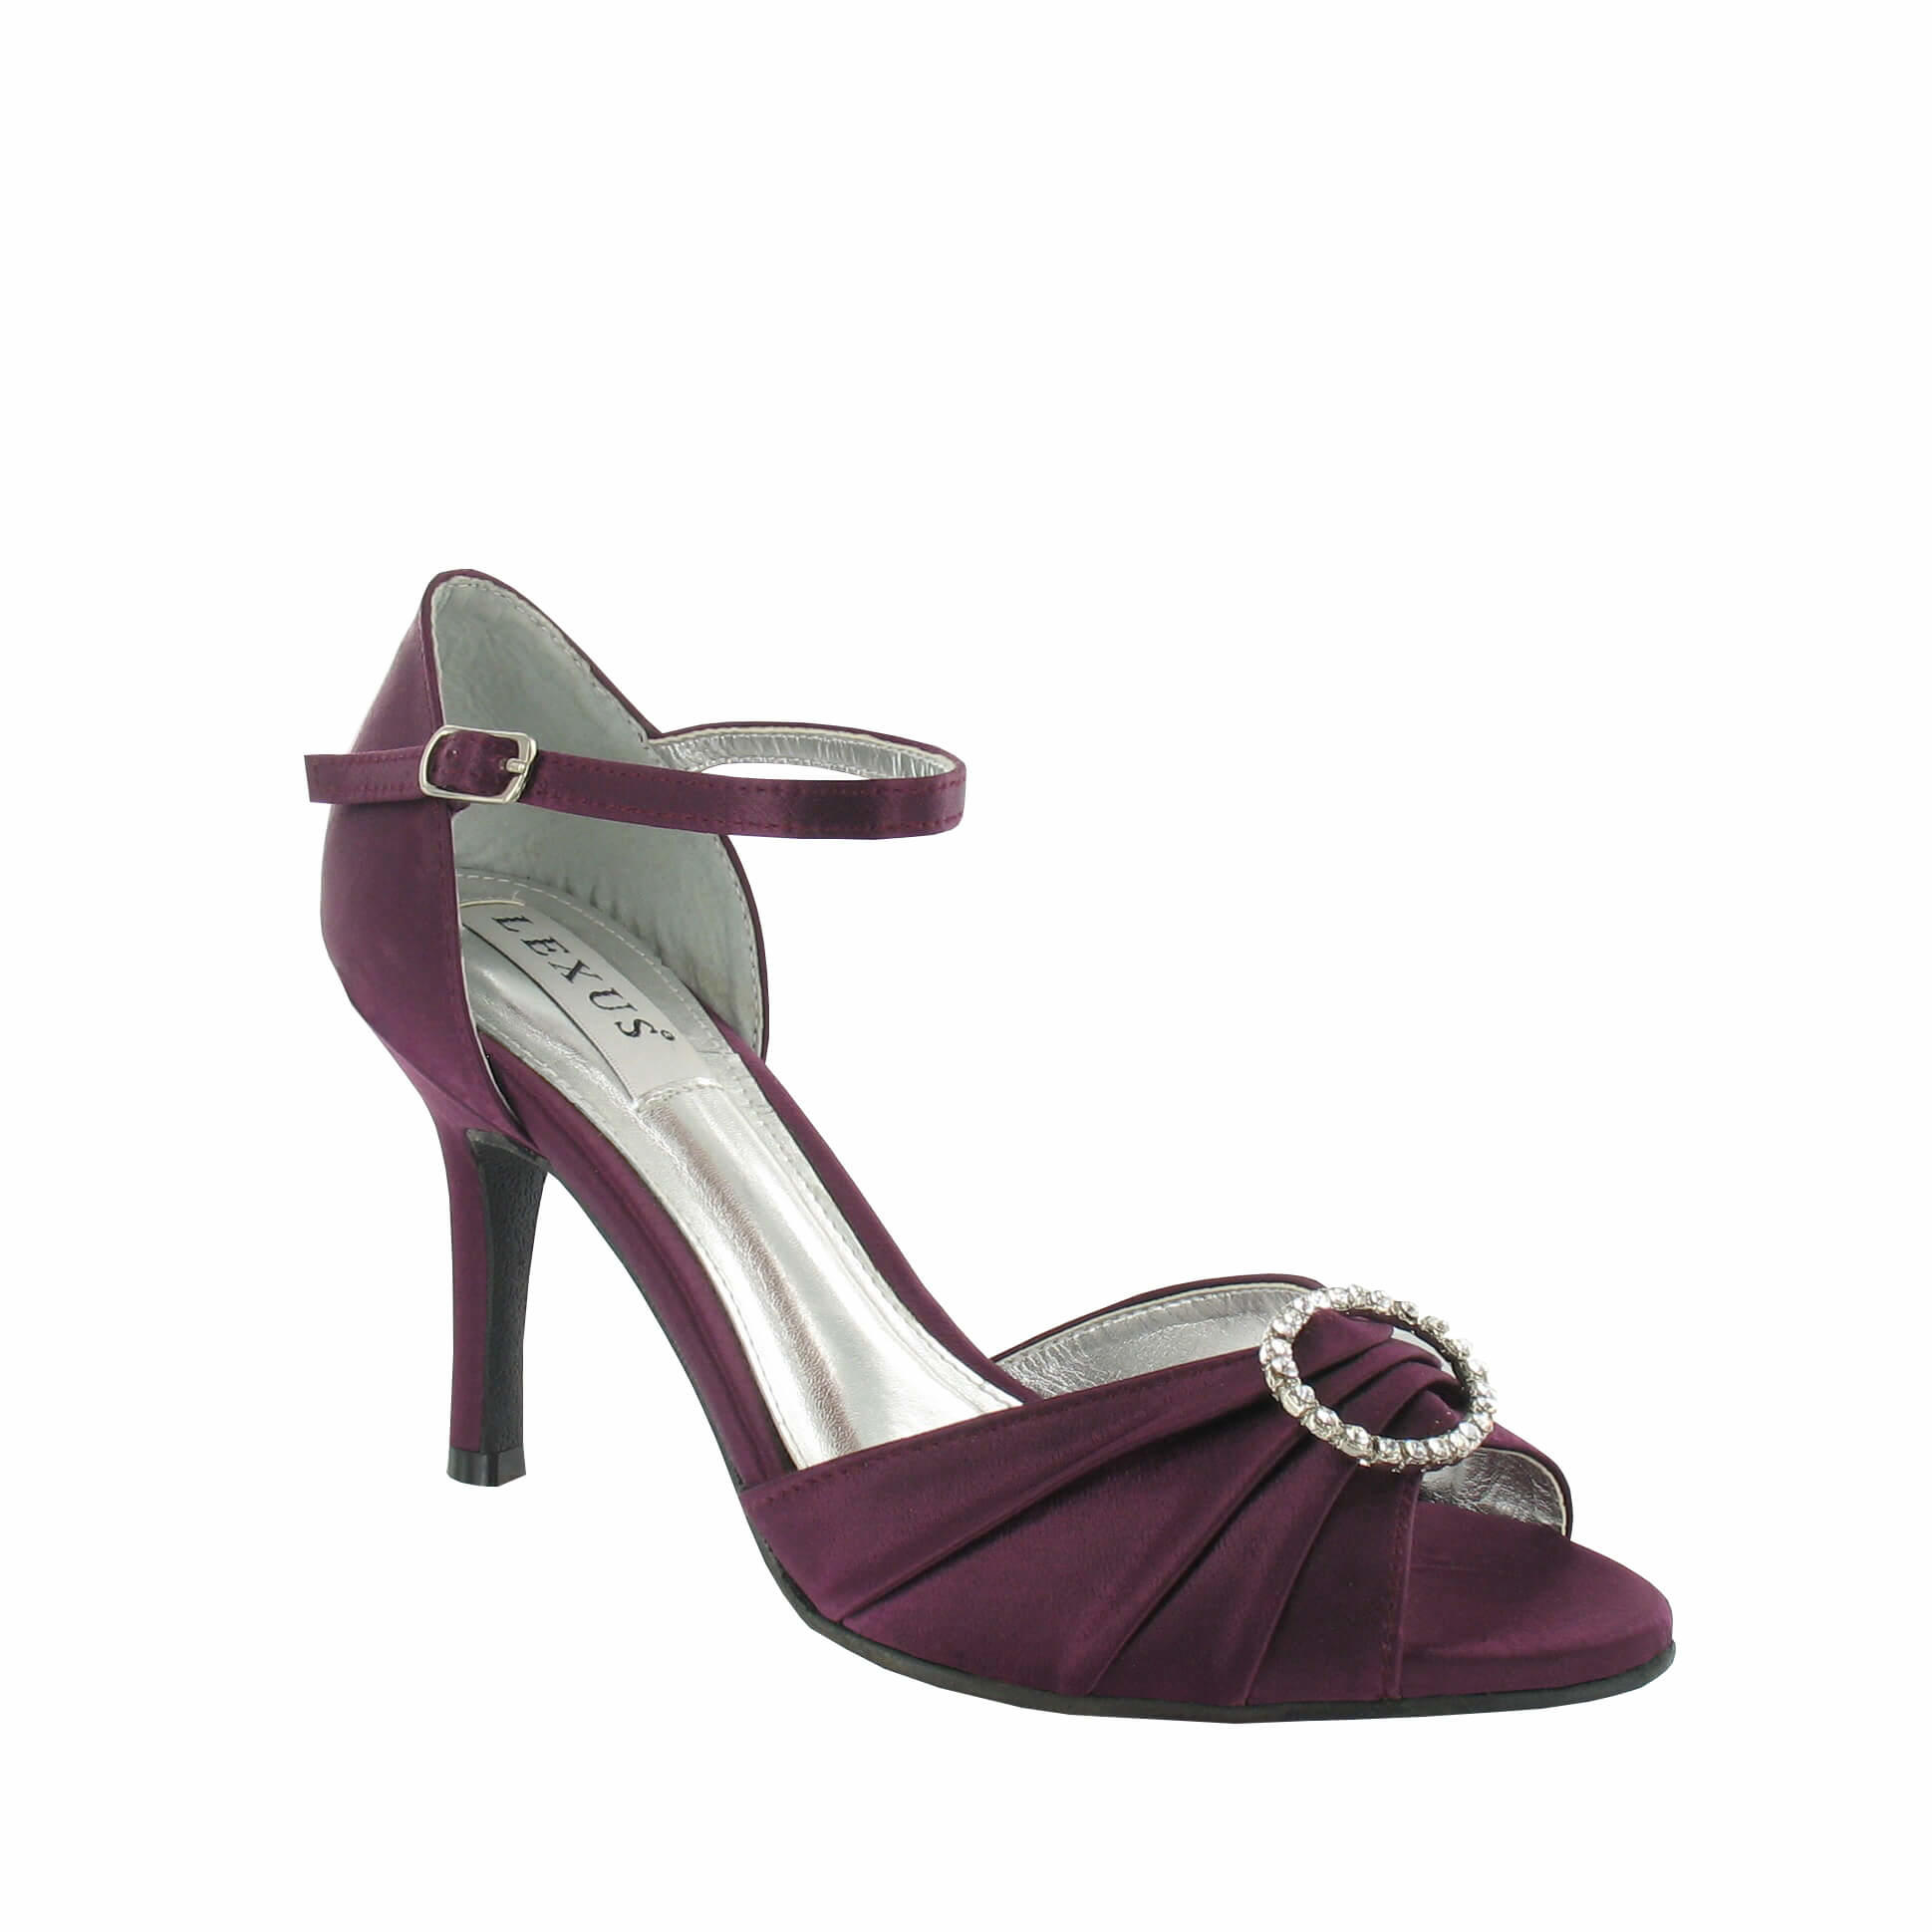 Sherlina in Plum